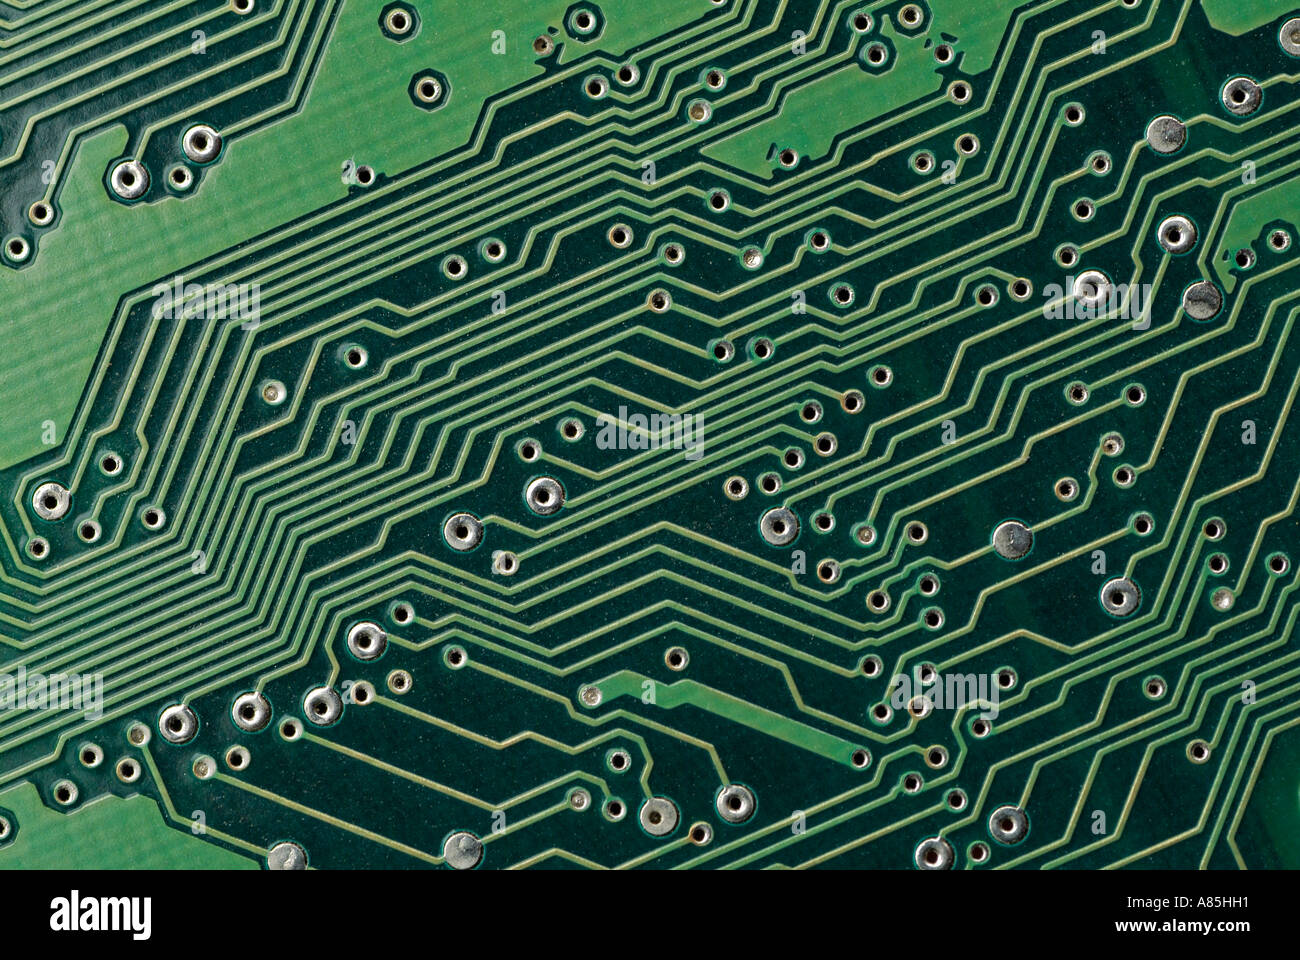 Circuitboard Stock Photos Images Alamy Old Electronics Circuit Board Royalty Free Photo Image Electronic